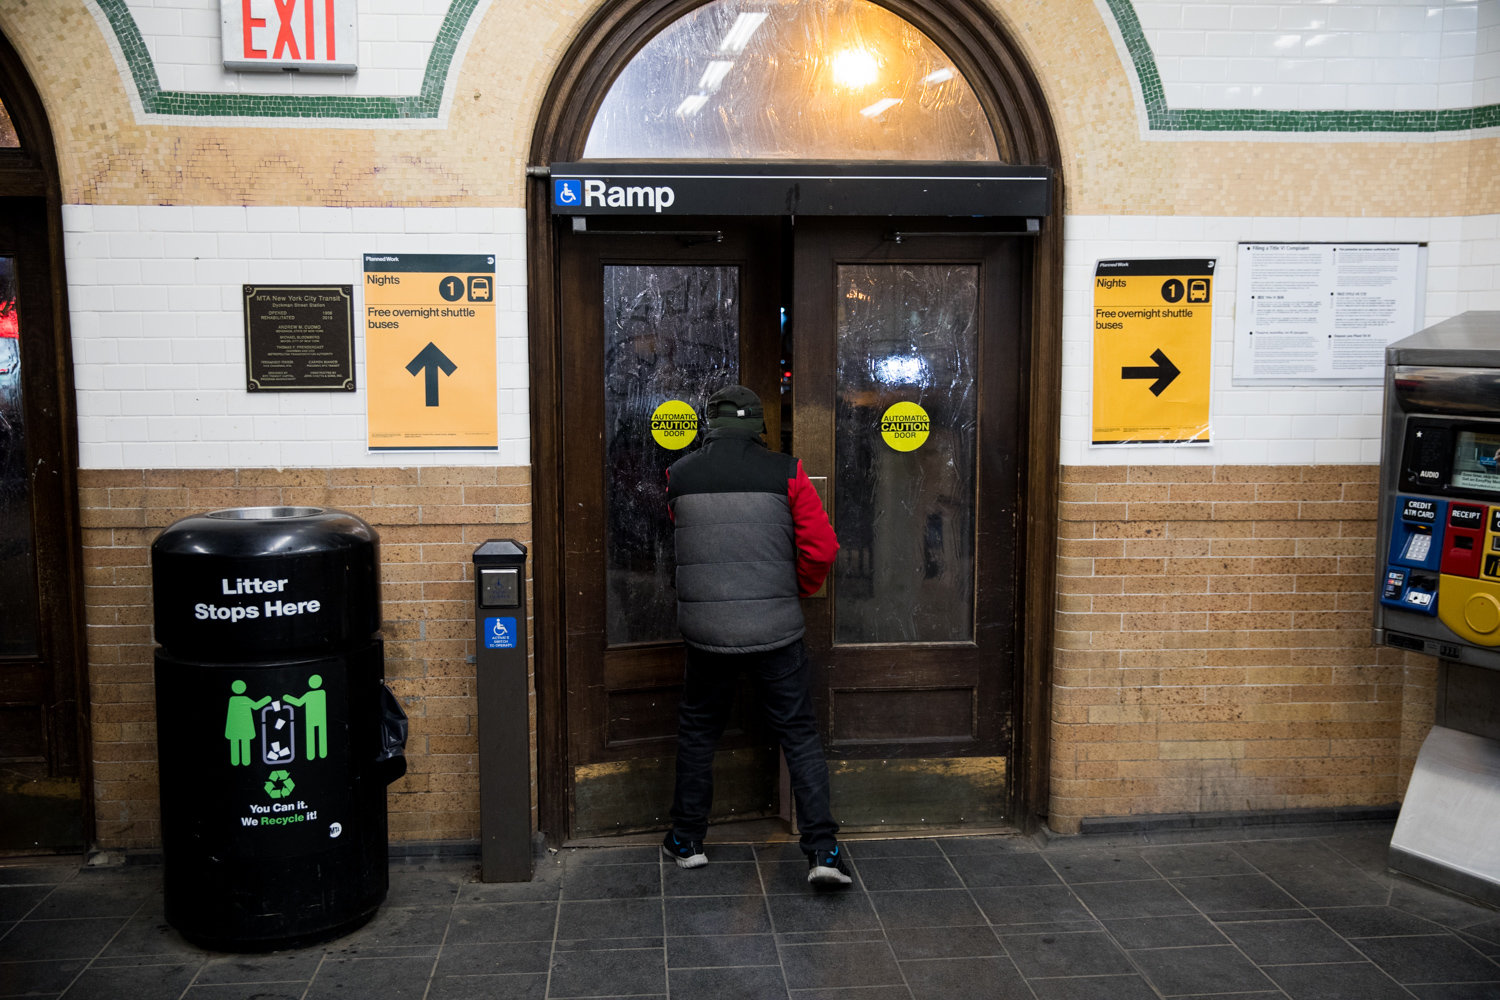 A commuter leaves the Dyckman Street 1 train station after service has been suspended between that station and 137th Street for repair work.